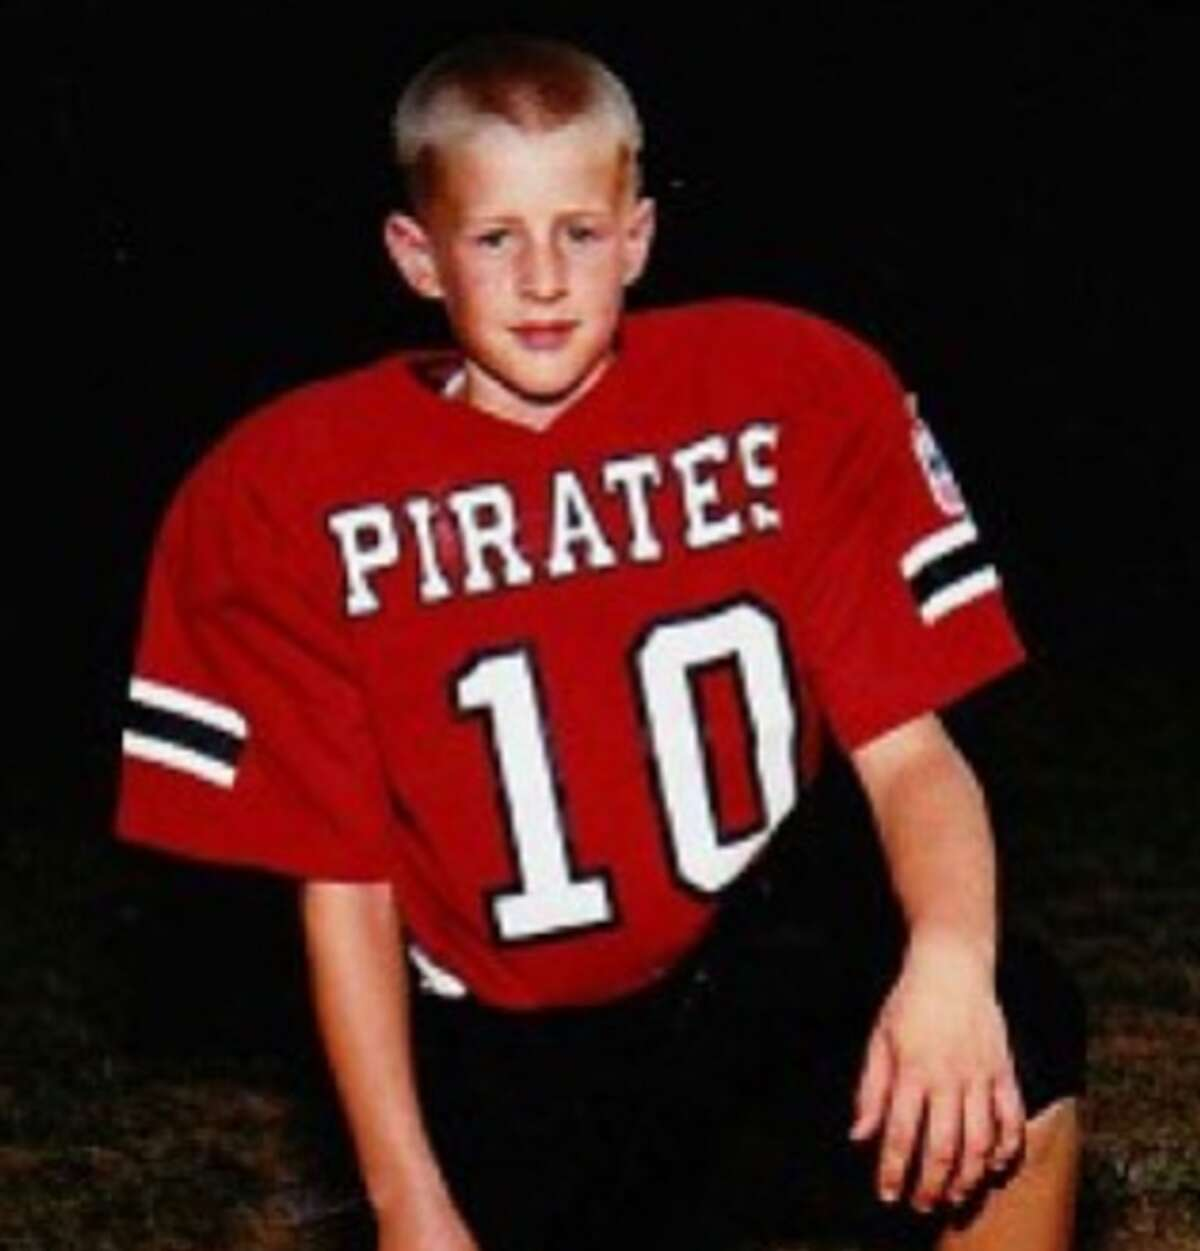 This youth quarterback grew up to become the face of the franchise ...